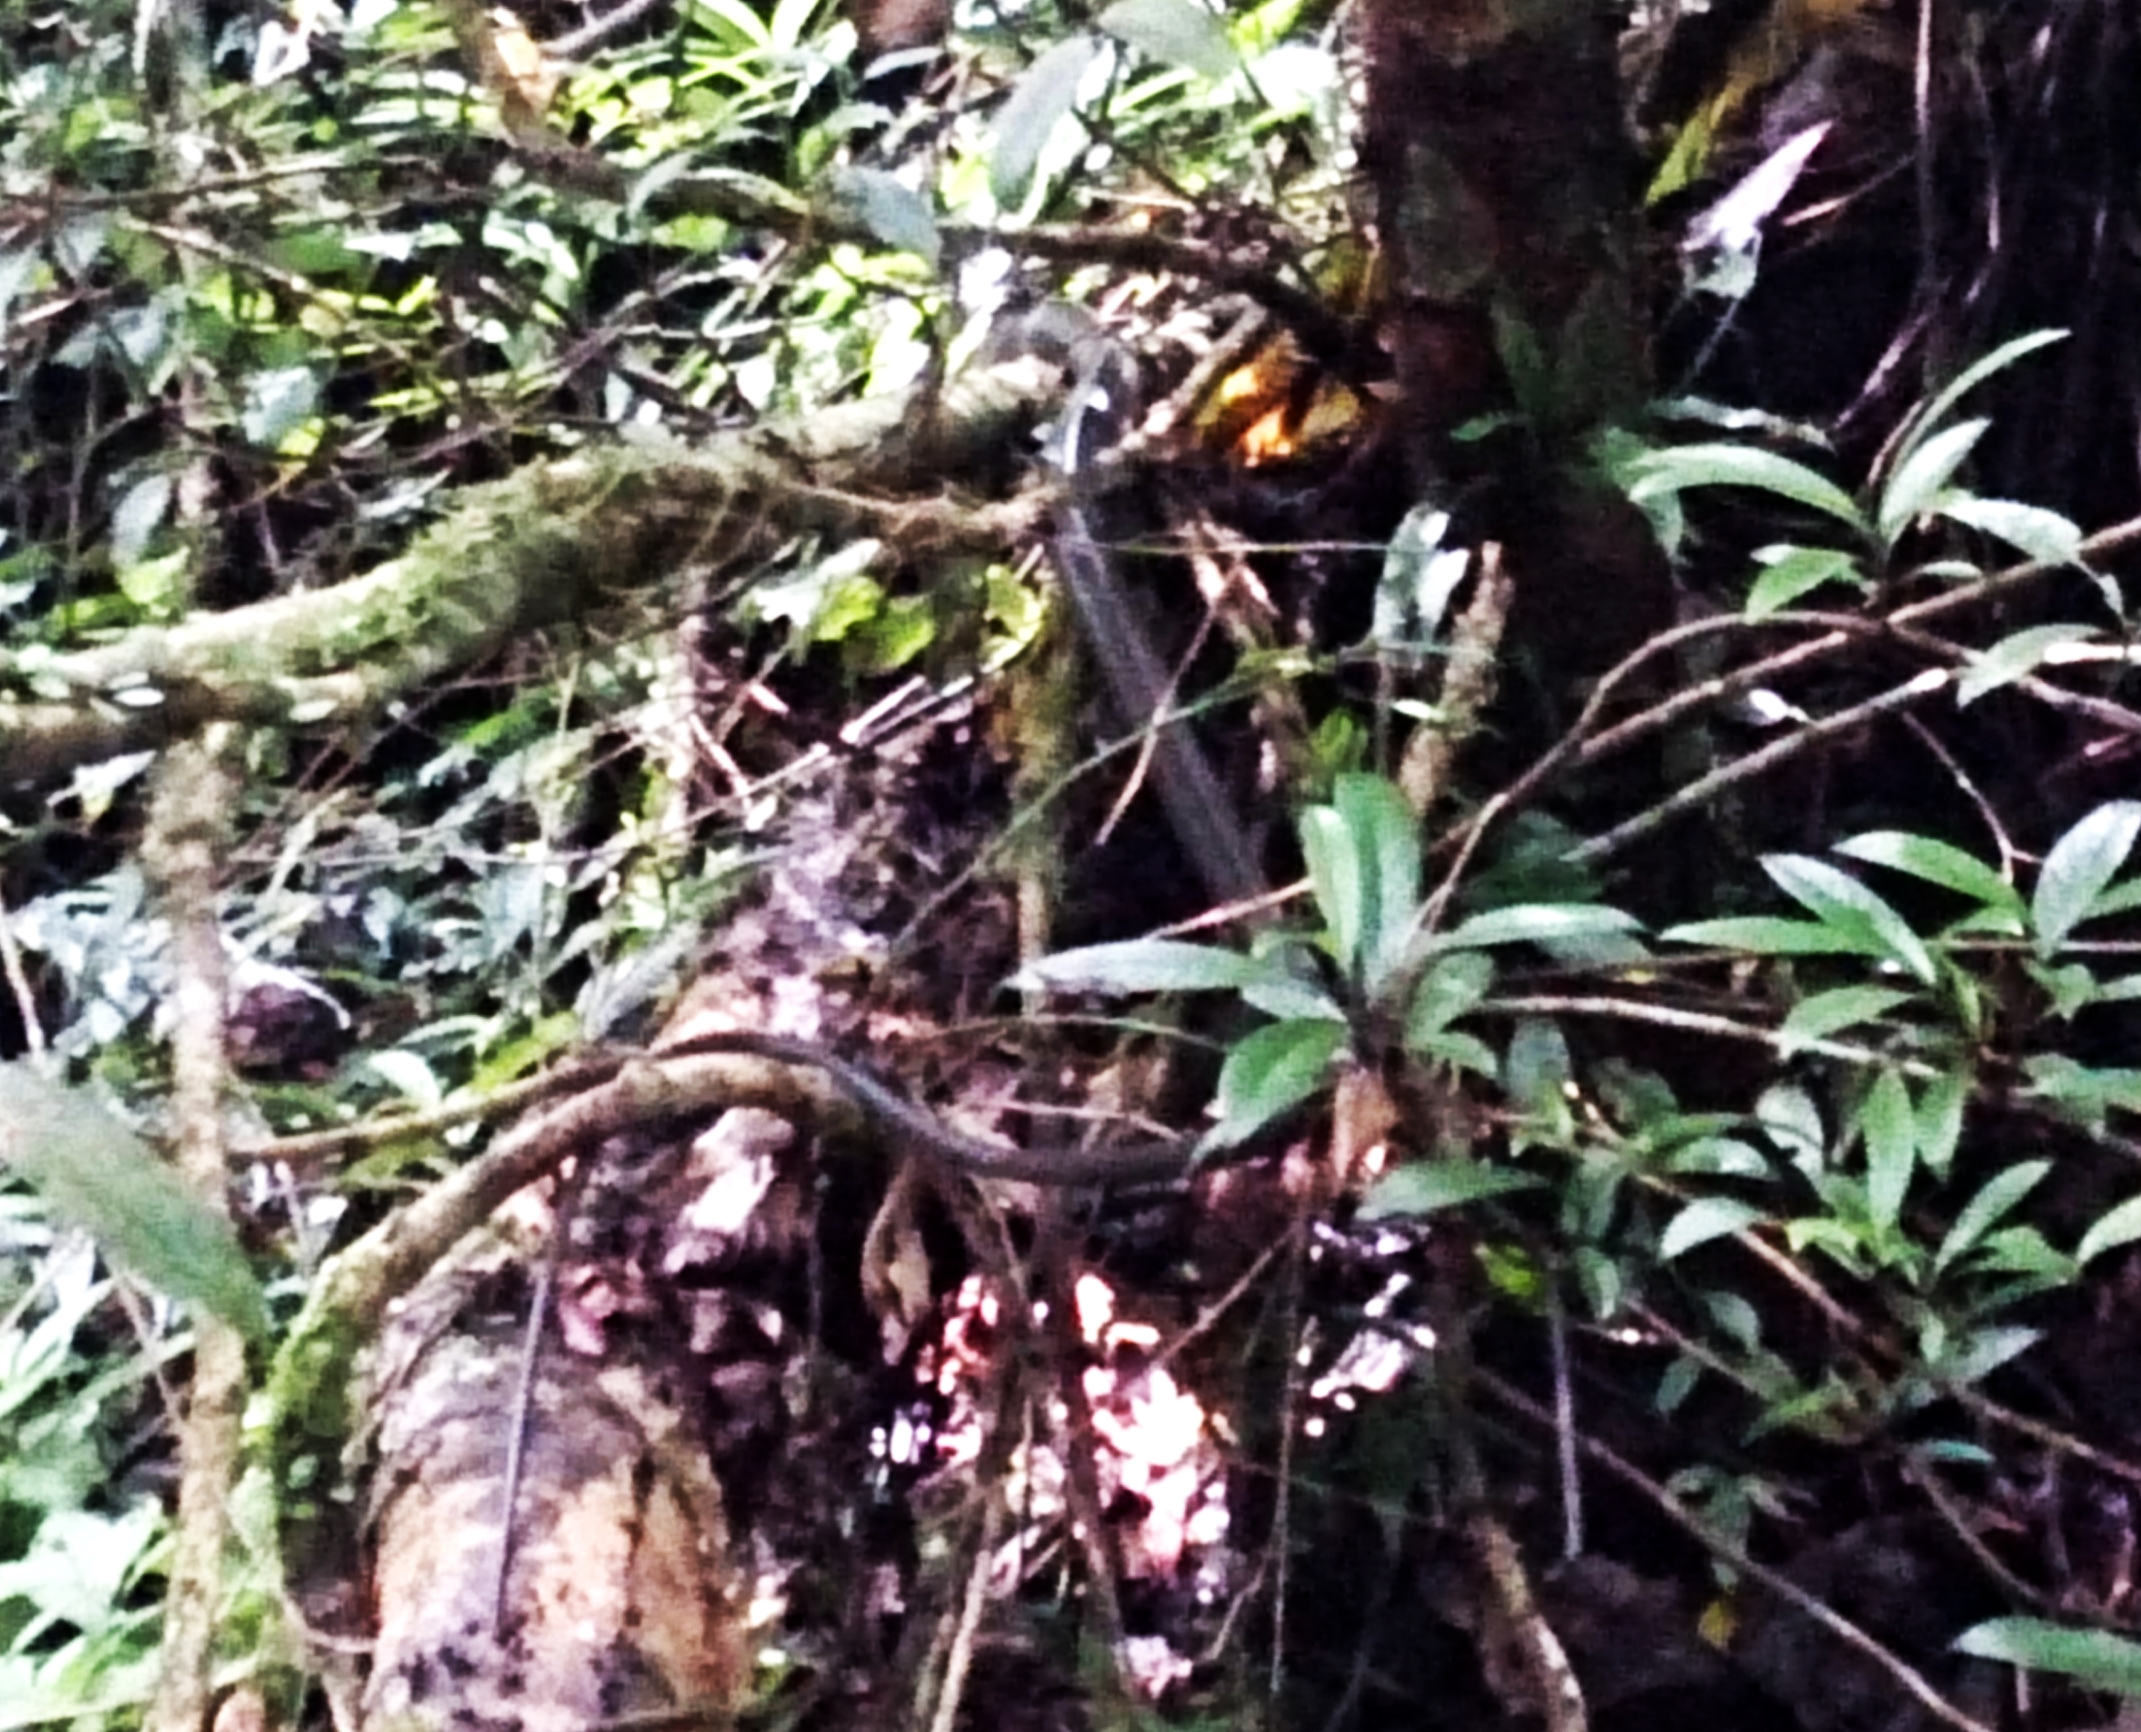 The gray thing in the centre of this terrible picture is one of the fastest snakes in Asia. It was lounging on a tree branch and stayed while I fumbled with two bags, and got my camera ready. Sadly it fled just as I was taking the picture.